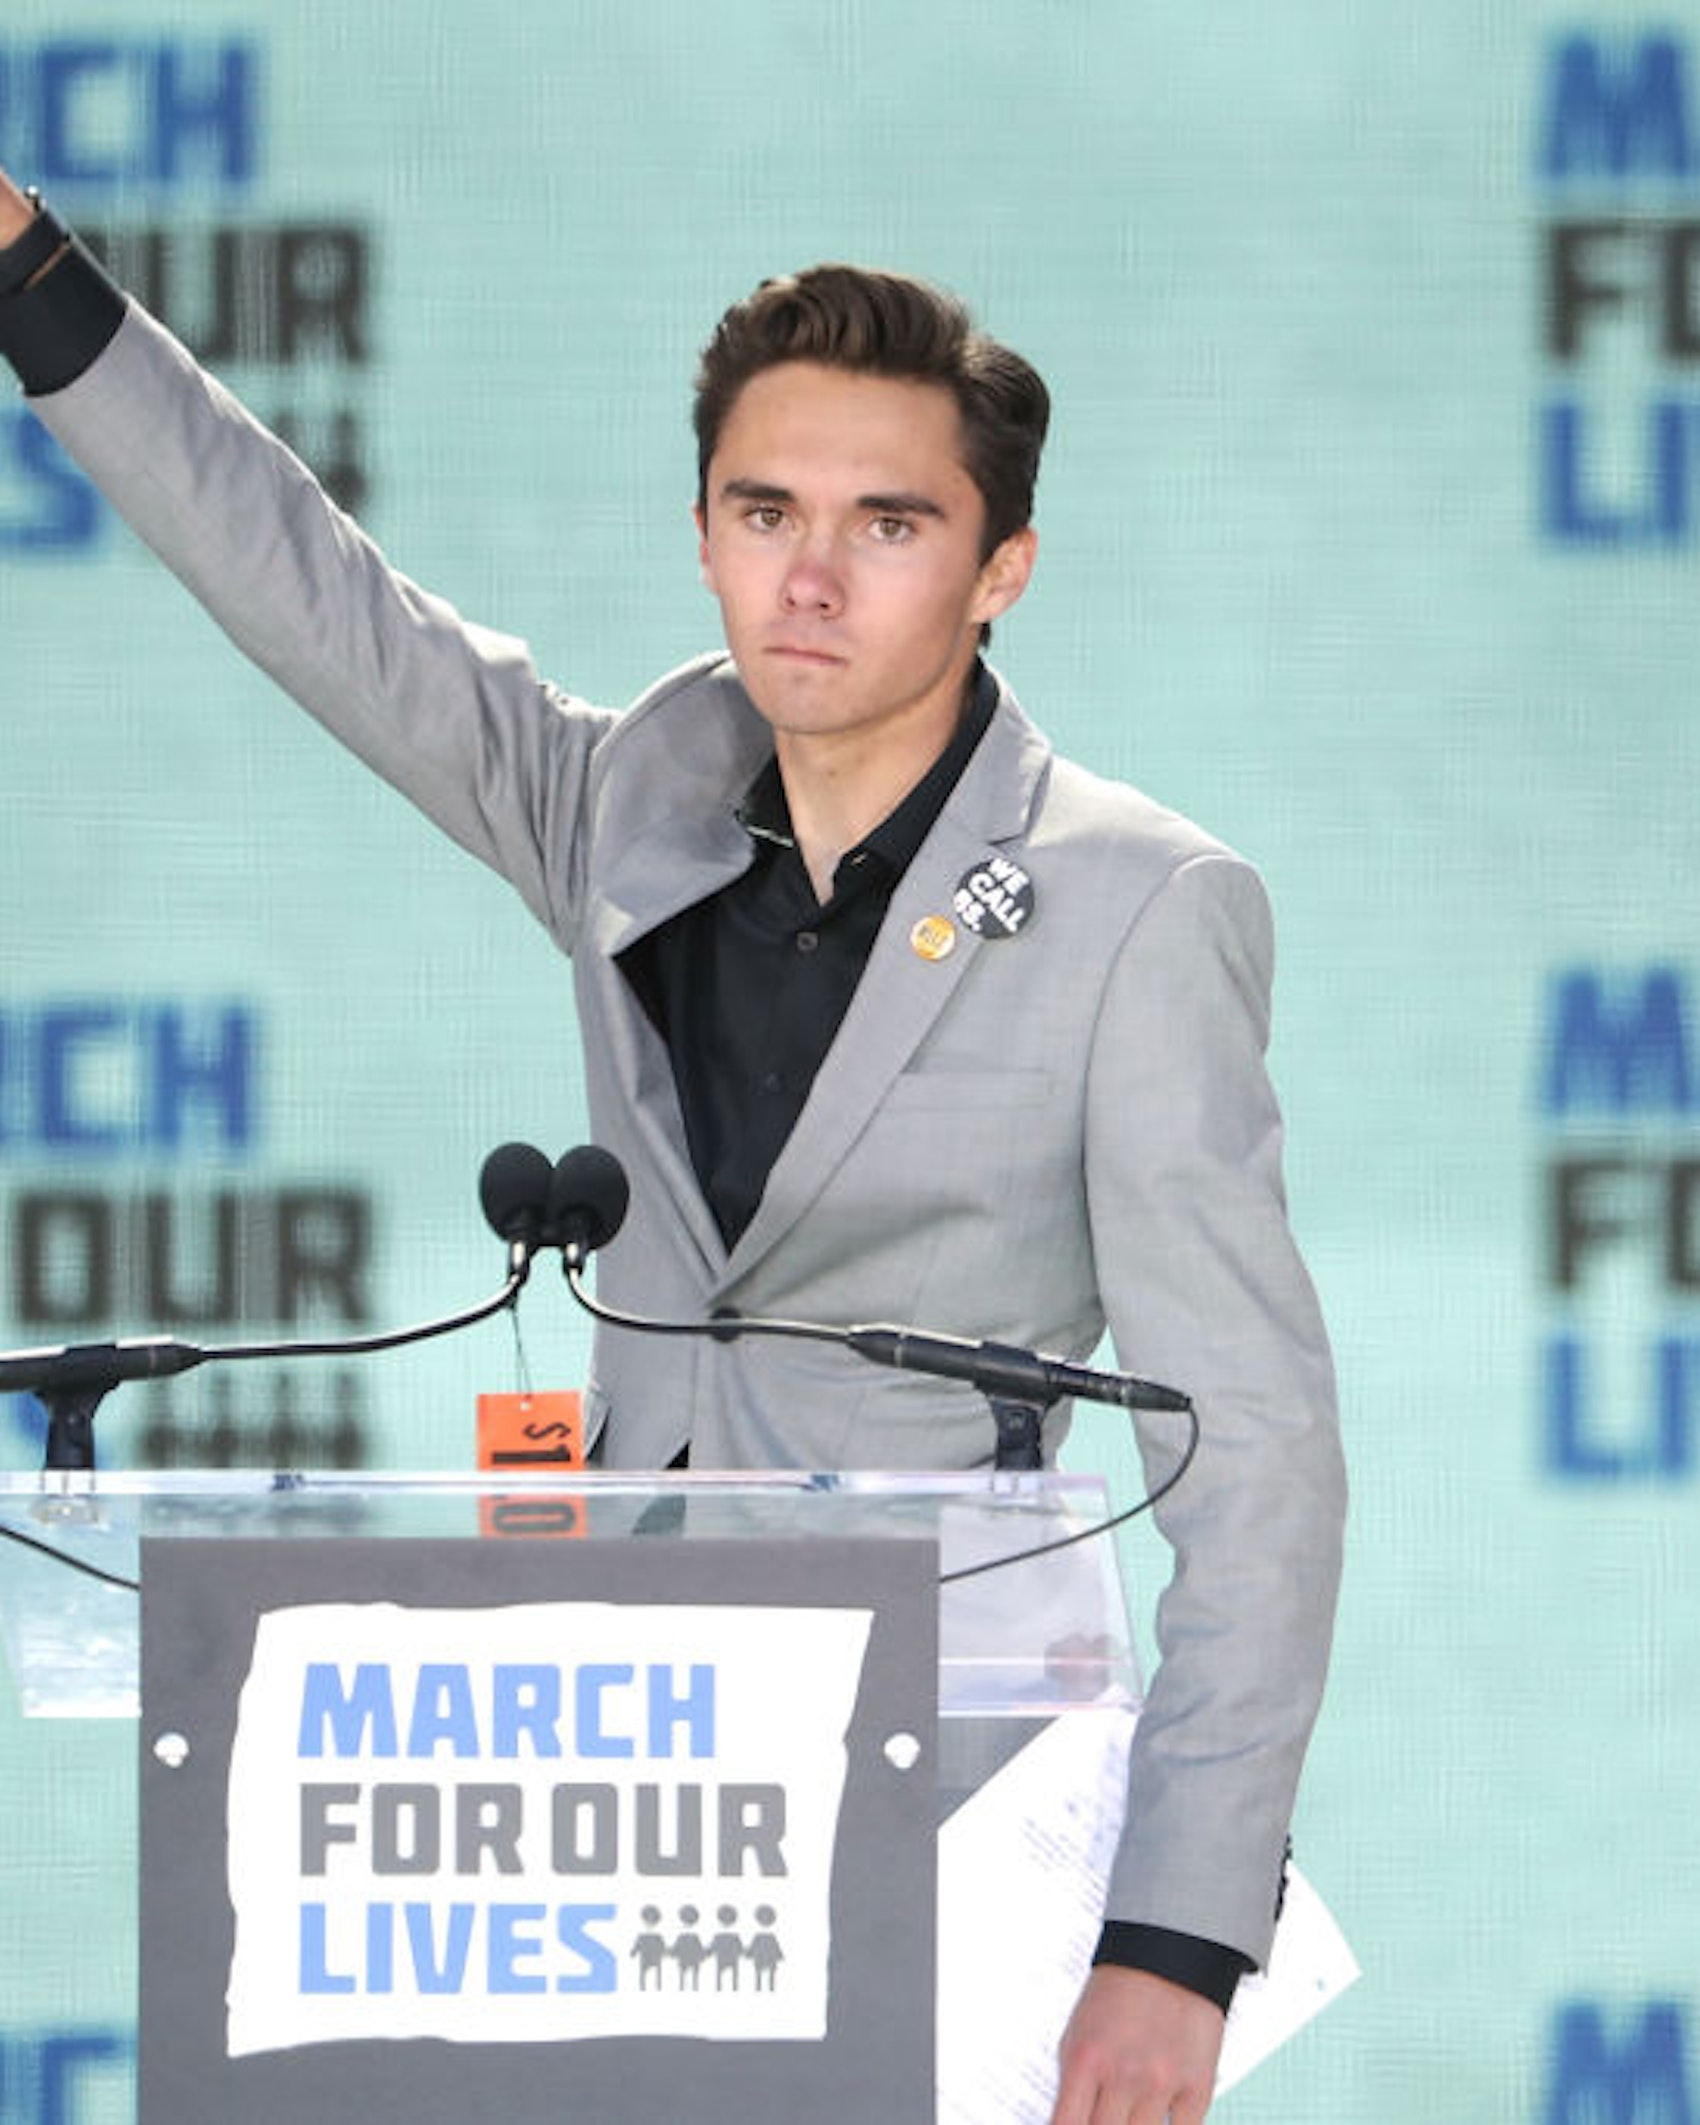 WASHINGTON, DC - MARCH 24: Marjory Stoneman Douglas High School Student David Hogg addresses the March for Our Lives rally on March 24, 2018 in Washington, DC. Hundreds of thousands of demonstrators, including students, teachers and parents gathered in Washington for the anti-gun violence rally organized by survivors of the Marjory Stoneman Douglas High School shooting on February 14 that left 17 dead. More than 800 related events are taking place around the world to call for legislative action to address school safety and gun violence. (Photo by Chip Somodevilla/Getty Images)